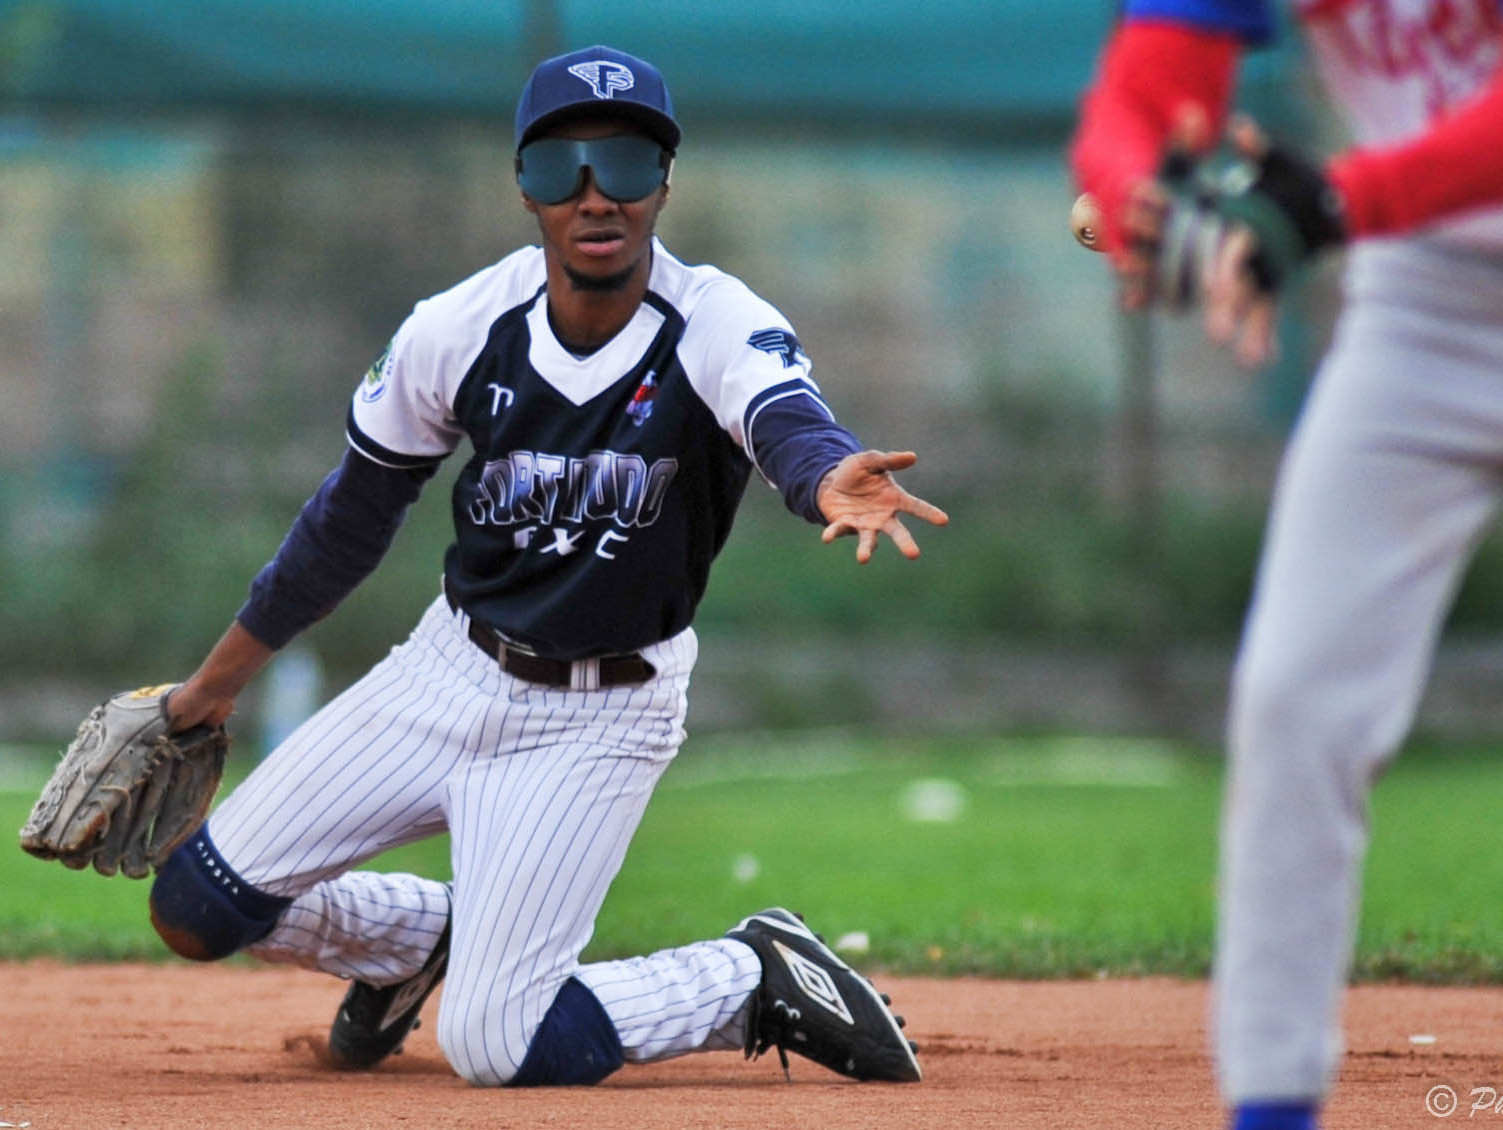 Seven teams contested the competition in Italy which has been promoted by the WBSC ©WBSC